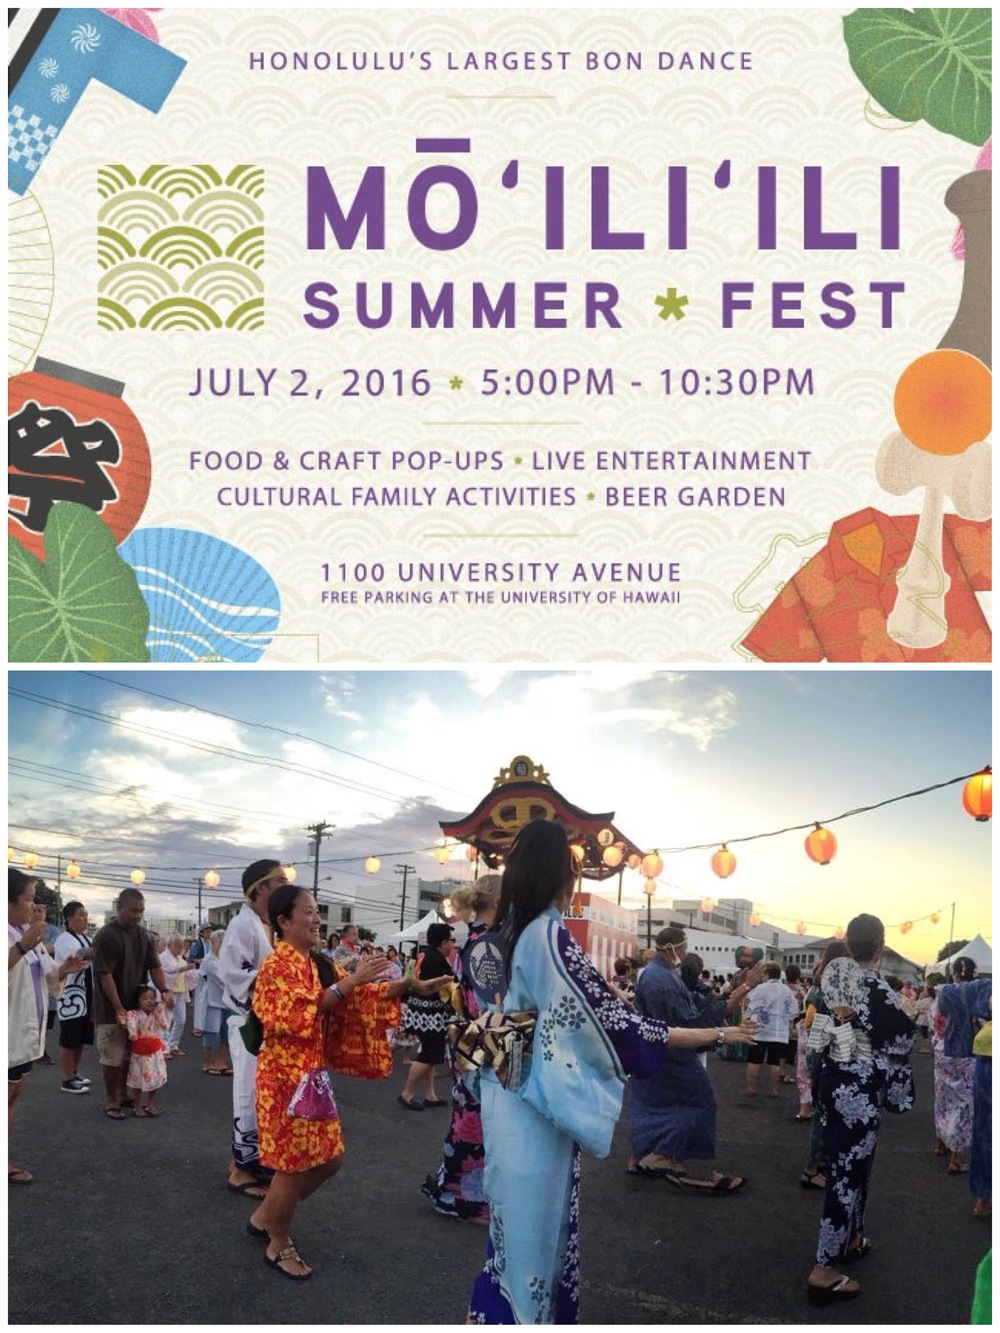 The 5th annual Mō'ili'ili Summer Fest is Saturday July 2nd from 5:00pm to 10:30pm in the parking area of the Varsity Building on University Avenue. The Mō'ili'ili Summer Fest is a lively event held in one of Honolulu's most historic and vivacious neighborhoods. Each year, thousands of guests dance in the Honolulu's largest Japanese Bon Dance of the season, enjoy delicious foods and visit a rich array of area retailers and artisans. Mō'ili'ili community organizations including the Mō'ili'ili Hongwanji Mission, Kamehameha Schools, Japanese Cultural Center of Hawaiʻi, Old Town Mō'ili'ili Business Association, Mō'ili'ili Community Center, Mō'ili'ili Neighborhood Board, the University of Hawai'i, and other community groups come together to create this unique community gathering. This FREE event is a blend of a traditional Bon Dance celebration and a modern street festival. The Mō'ili'ili Summer Fest is important to us for its spiritual significance, value to the community, commitment to strengthening ties between all generations, and for fostering collaborations between local businesses, artisans, and community organizations.